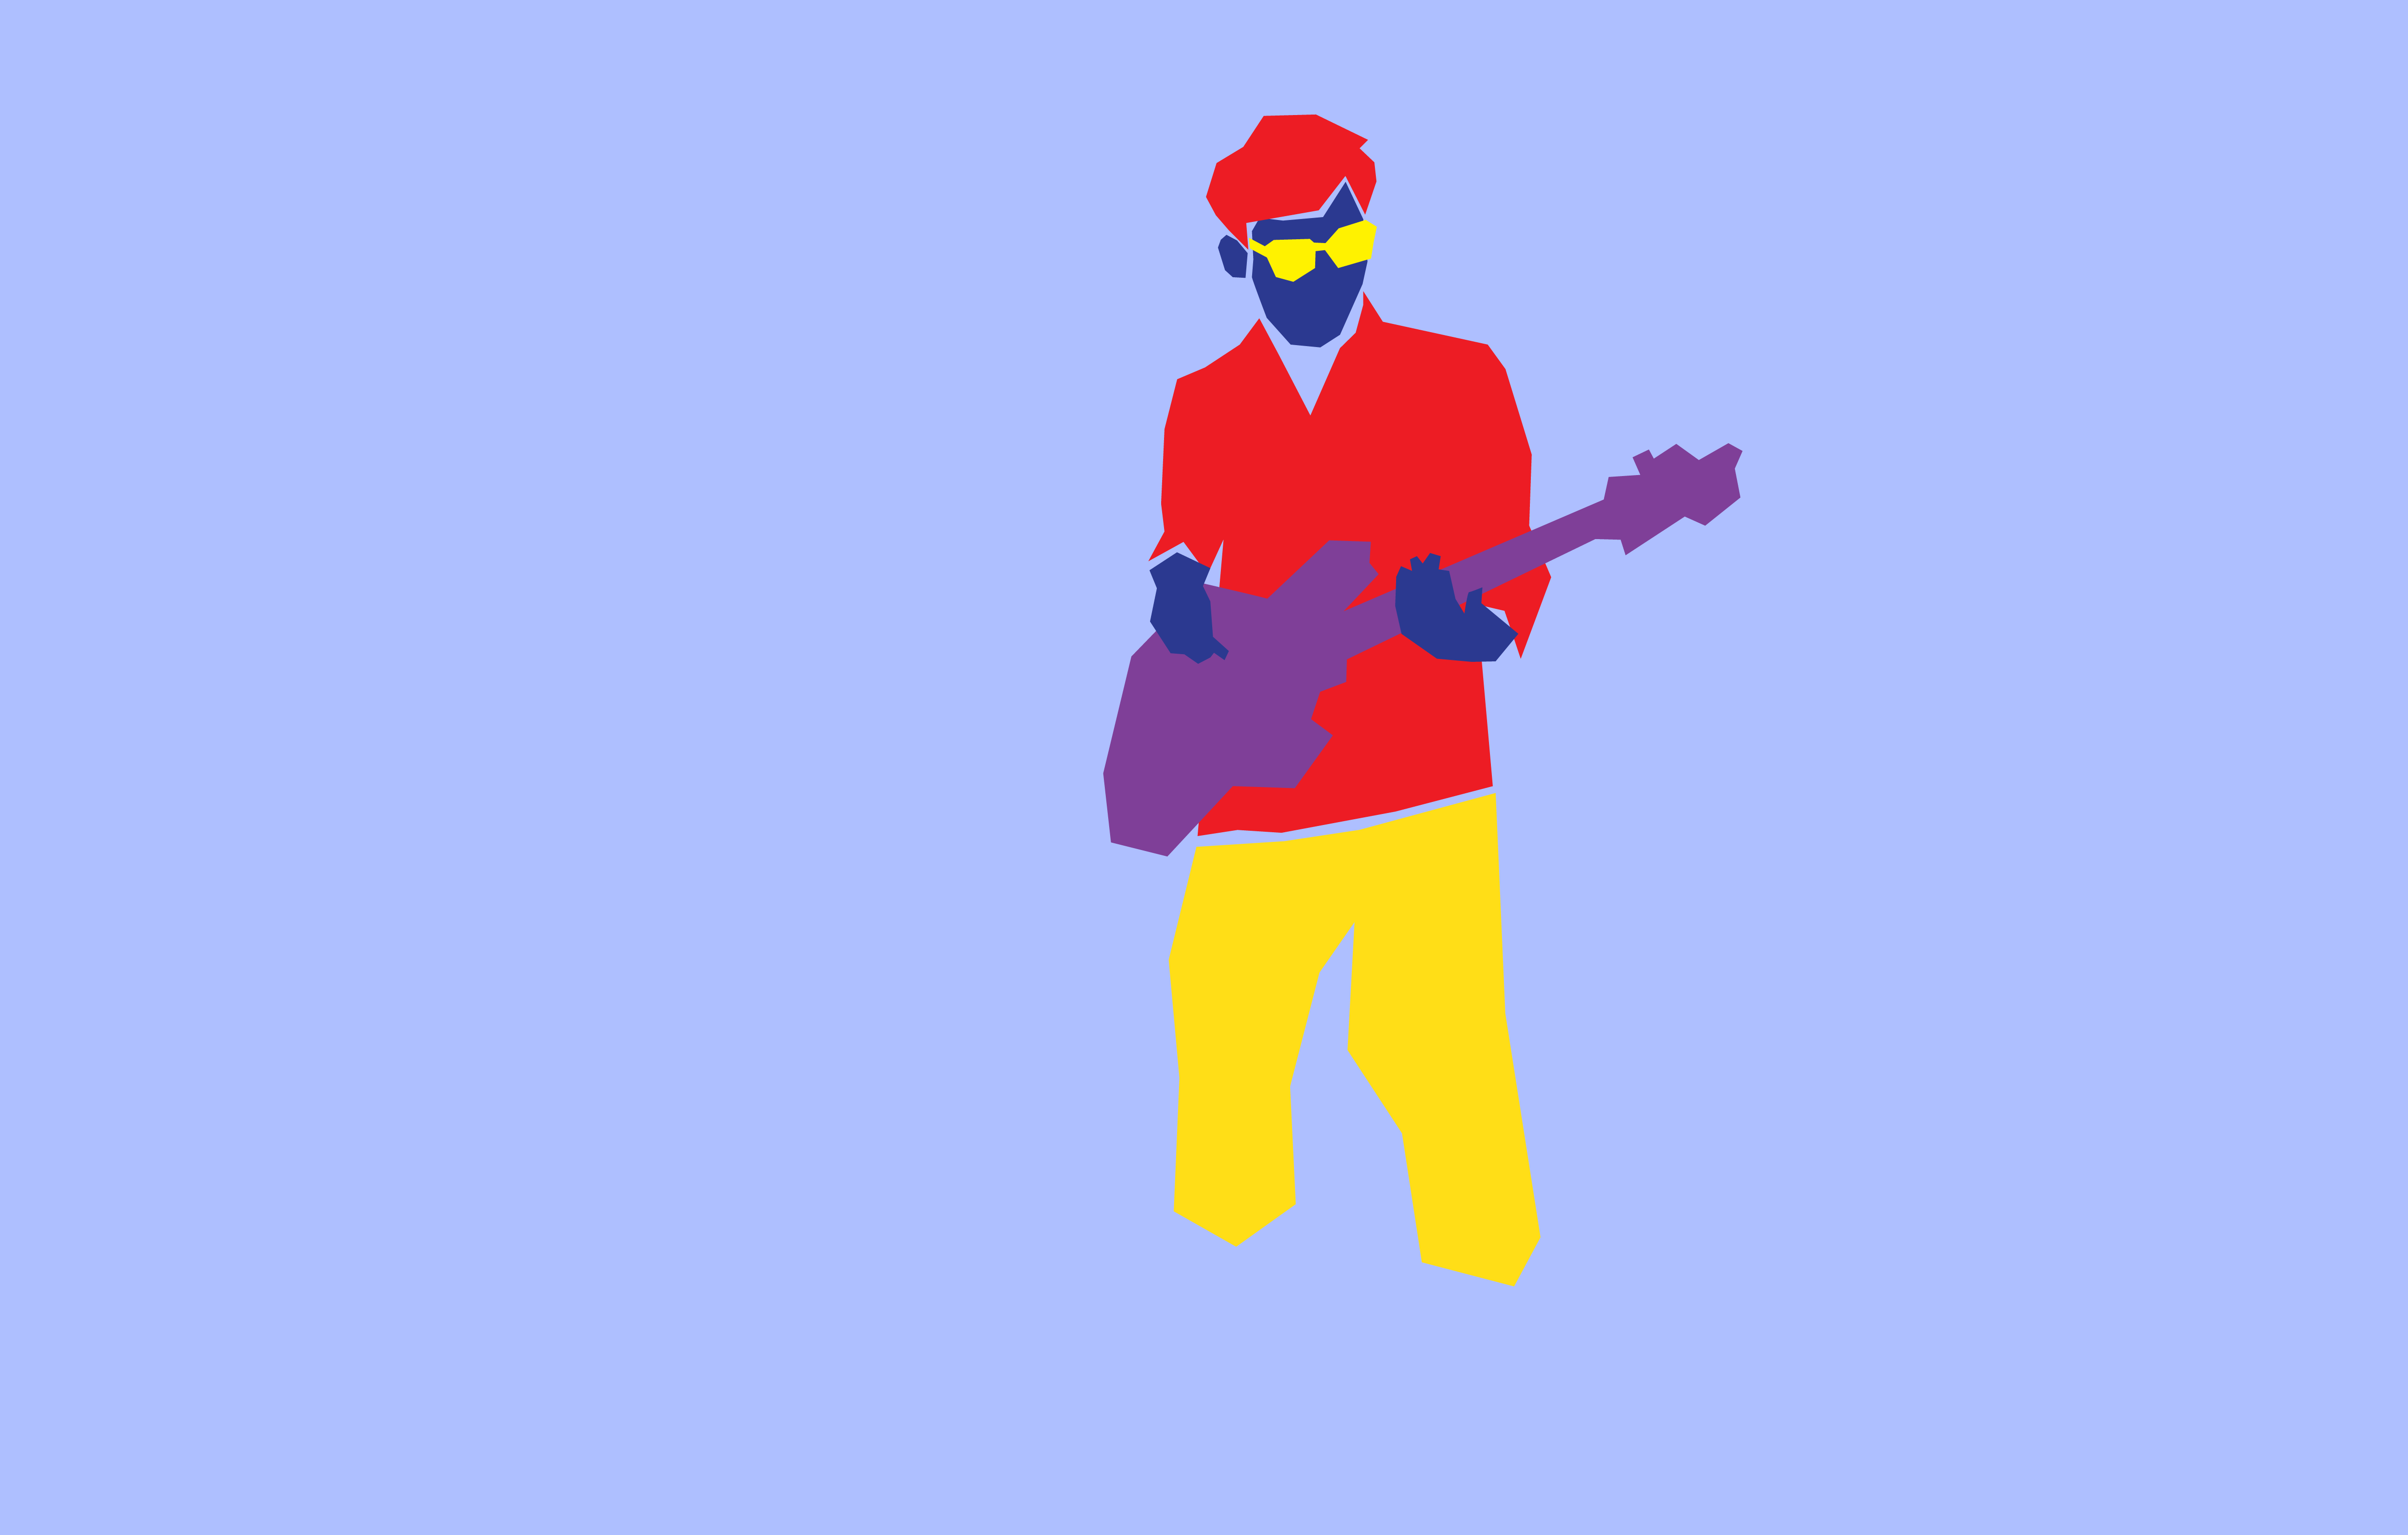 vulfpeck illustration colorful art design bngdesign